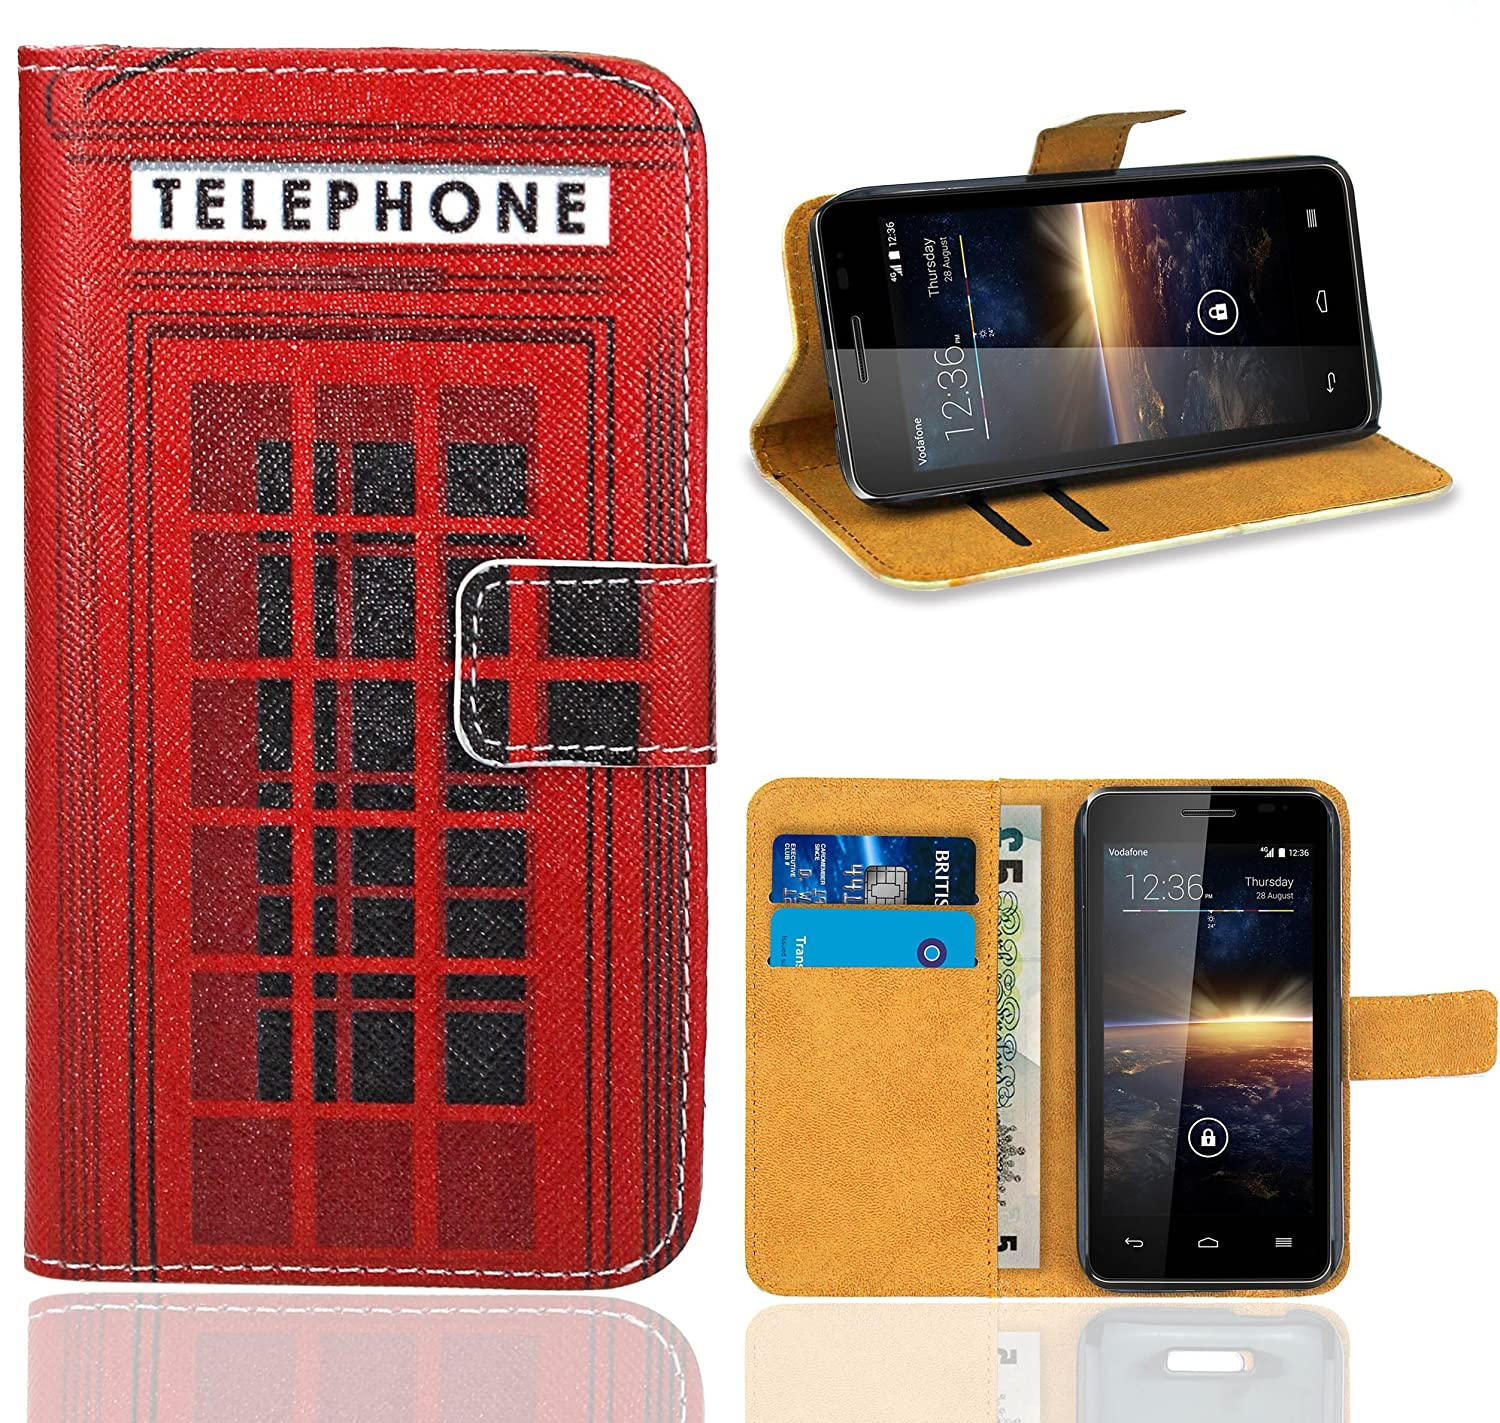 Amazon.com: Vodafone Smart 4 Turbo Case, FoneExpert® Premium Leather Flip Wallet Bag Case Cover For Vodafone Smart 4 Turbo: Cell Phones & Accessories